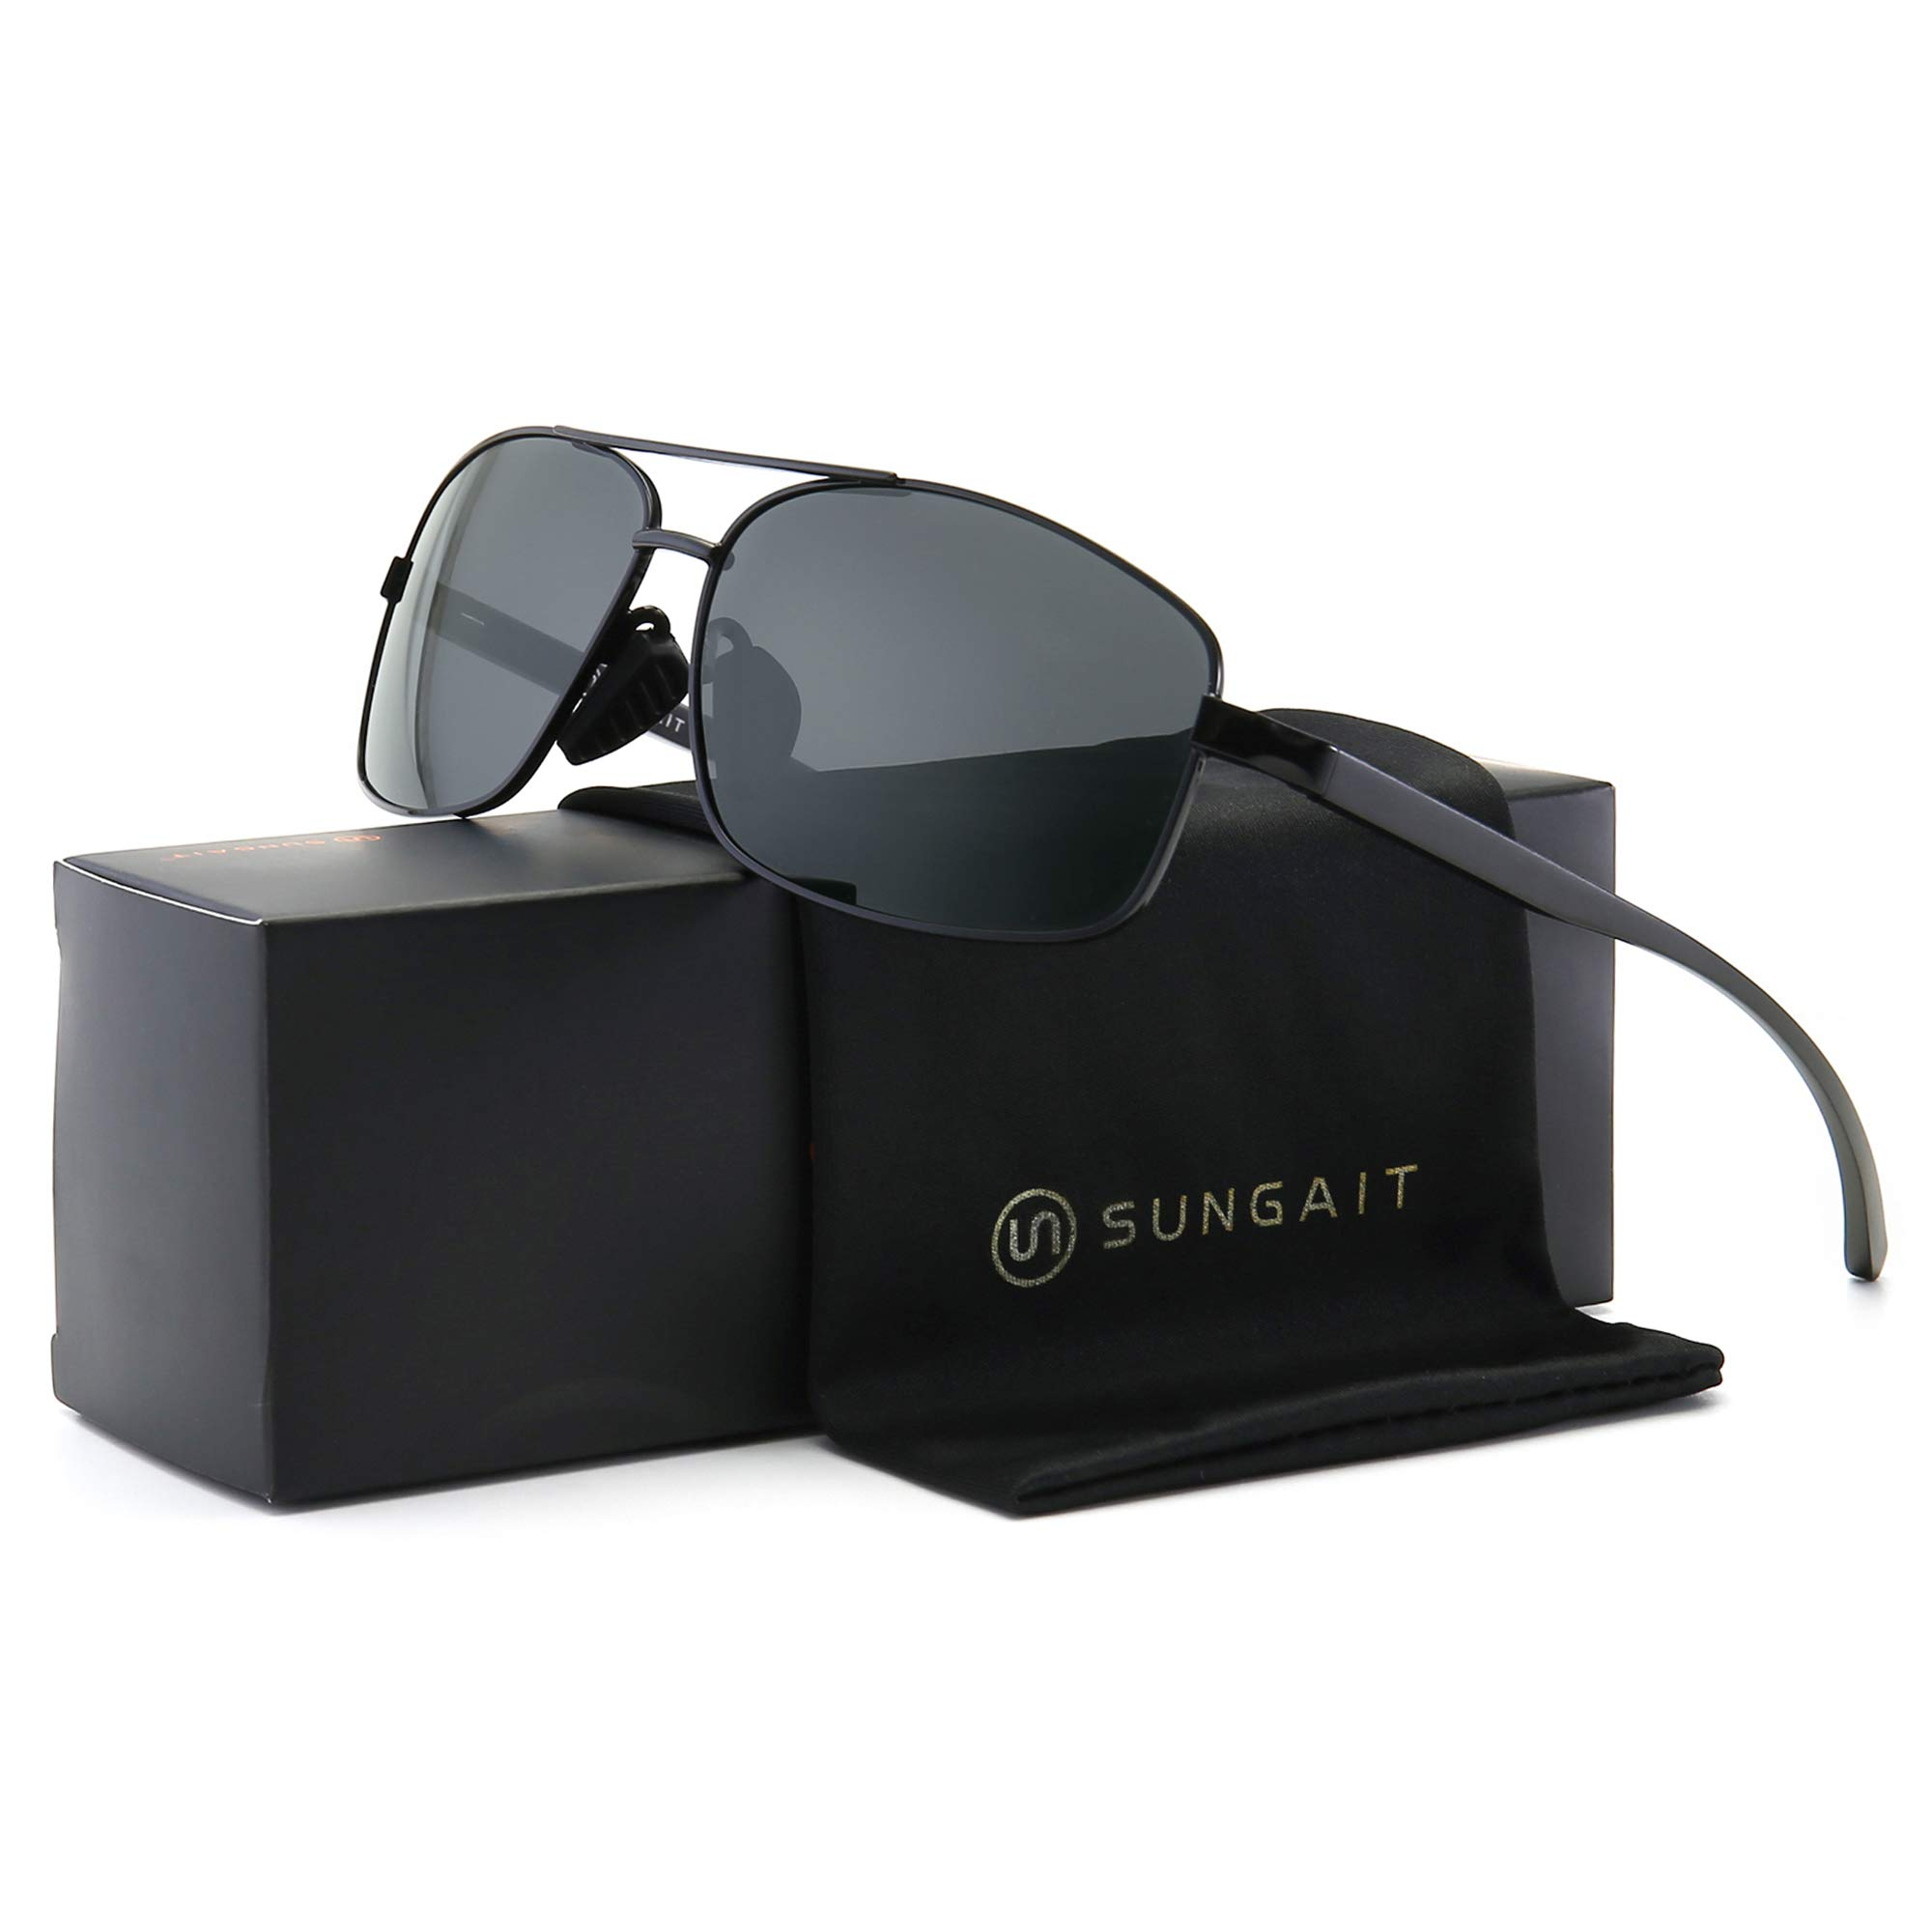 SUNGAIT Ultra Lightweight Rectangular Polarized Sunglasses UV400 Protection (Black Frame Gray Lens, 62) Metal Frame 2458 HKH by SUNGAIT